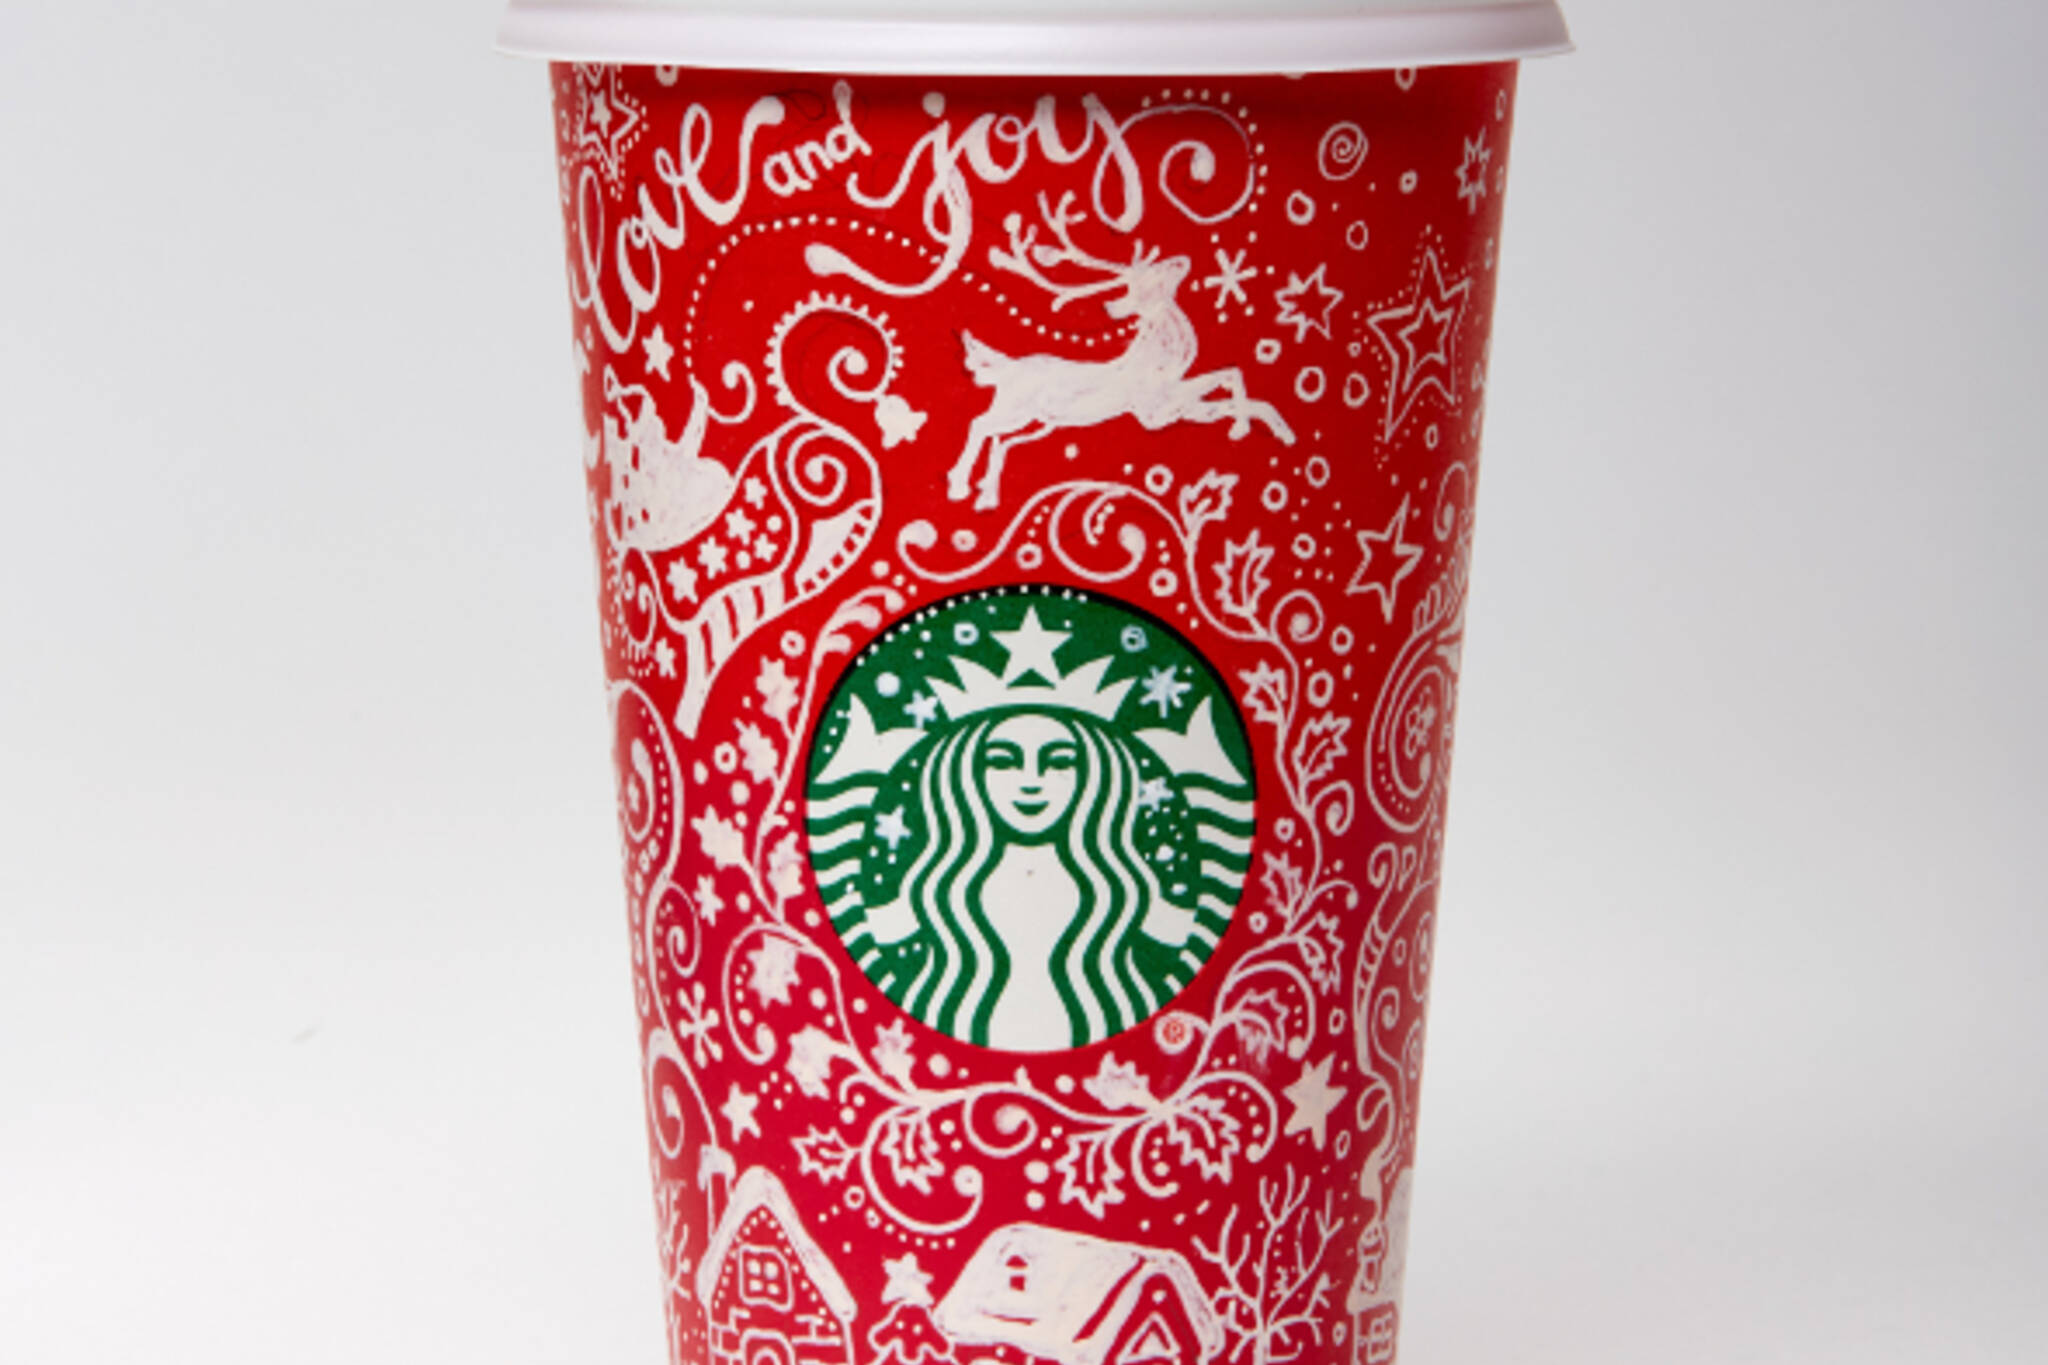 starbucks red cup toronto